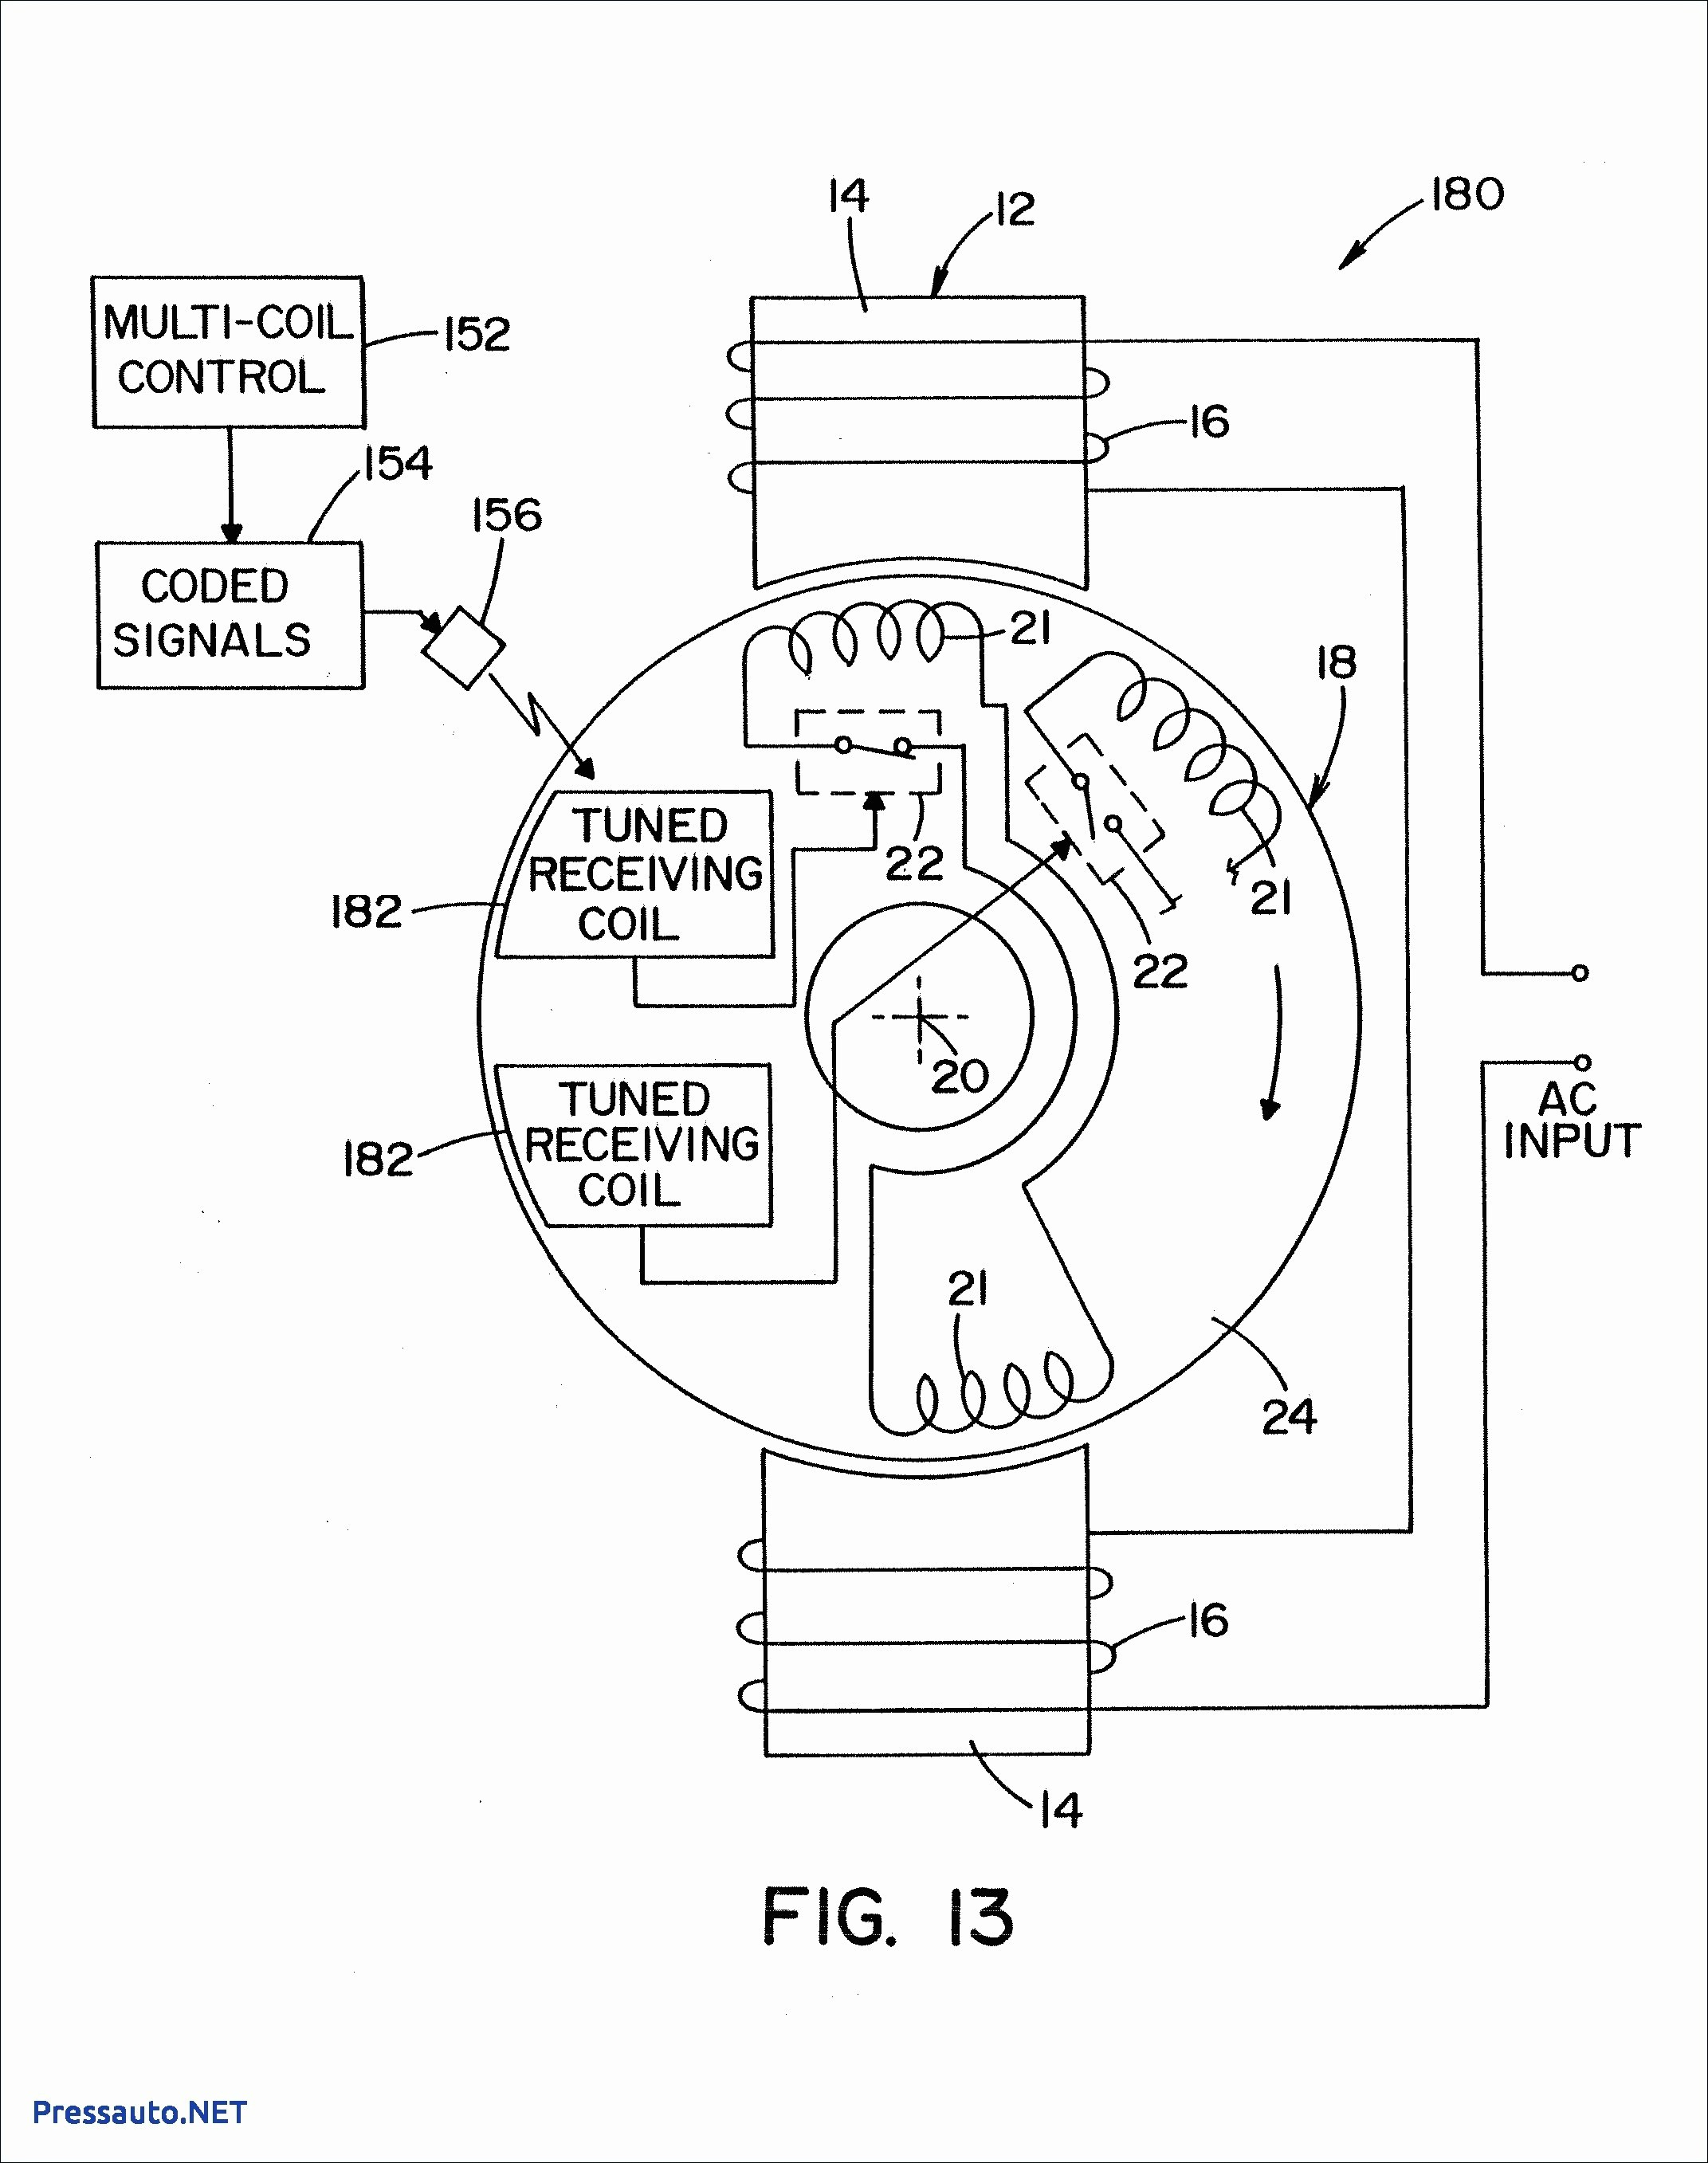 Fantastic Vent Fan Wiring Diagram | Manual E-Books - Fantastic Vent Wiring Diagram